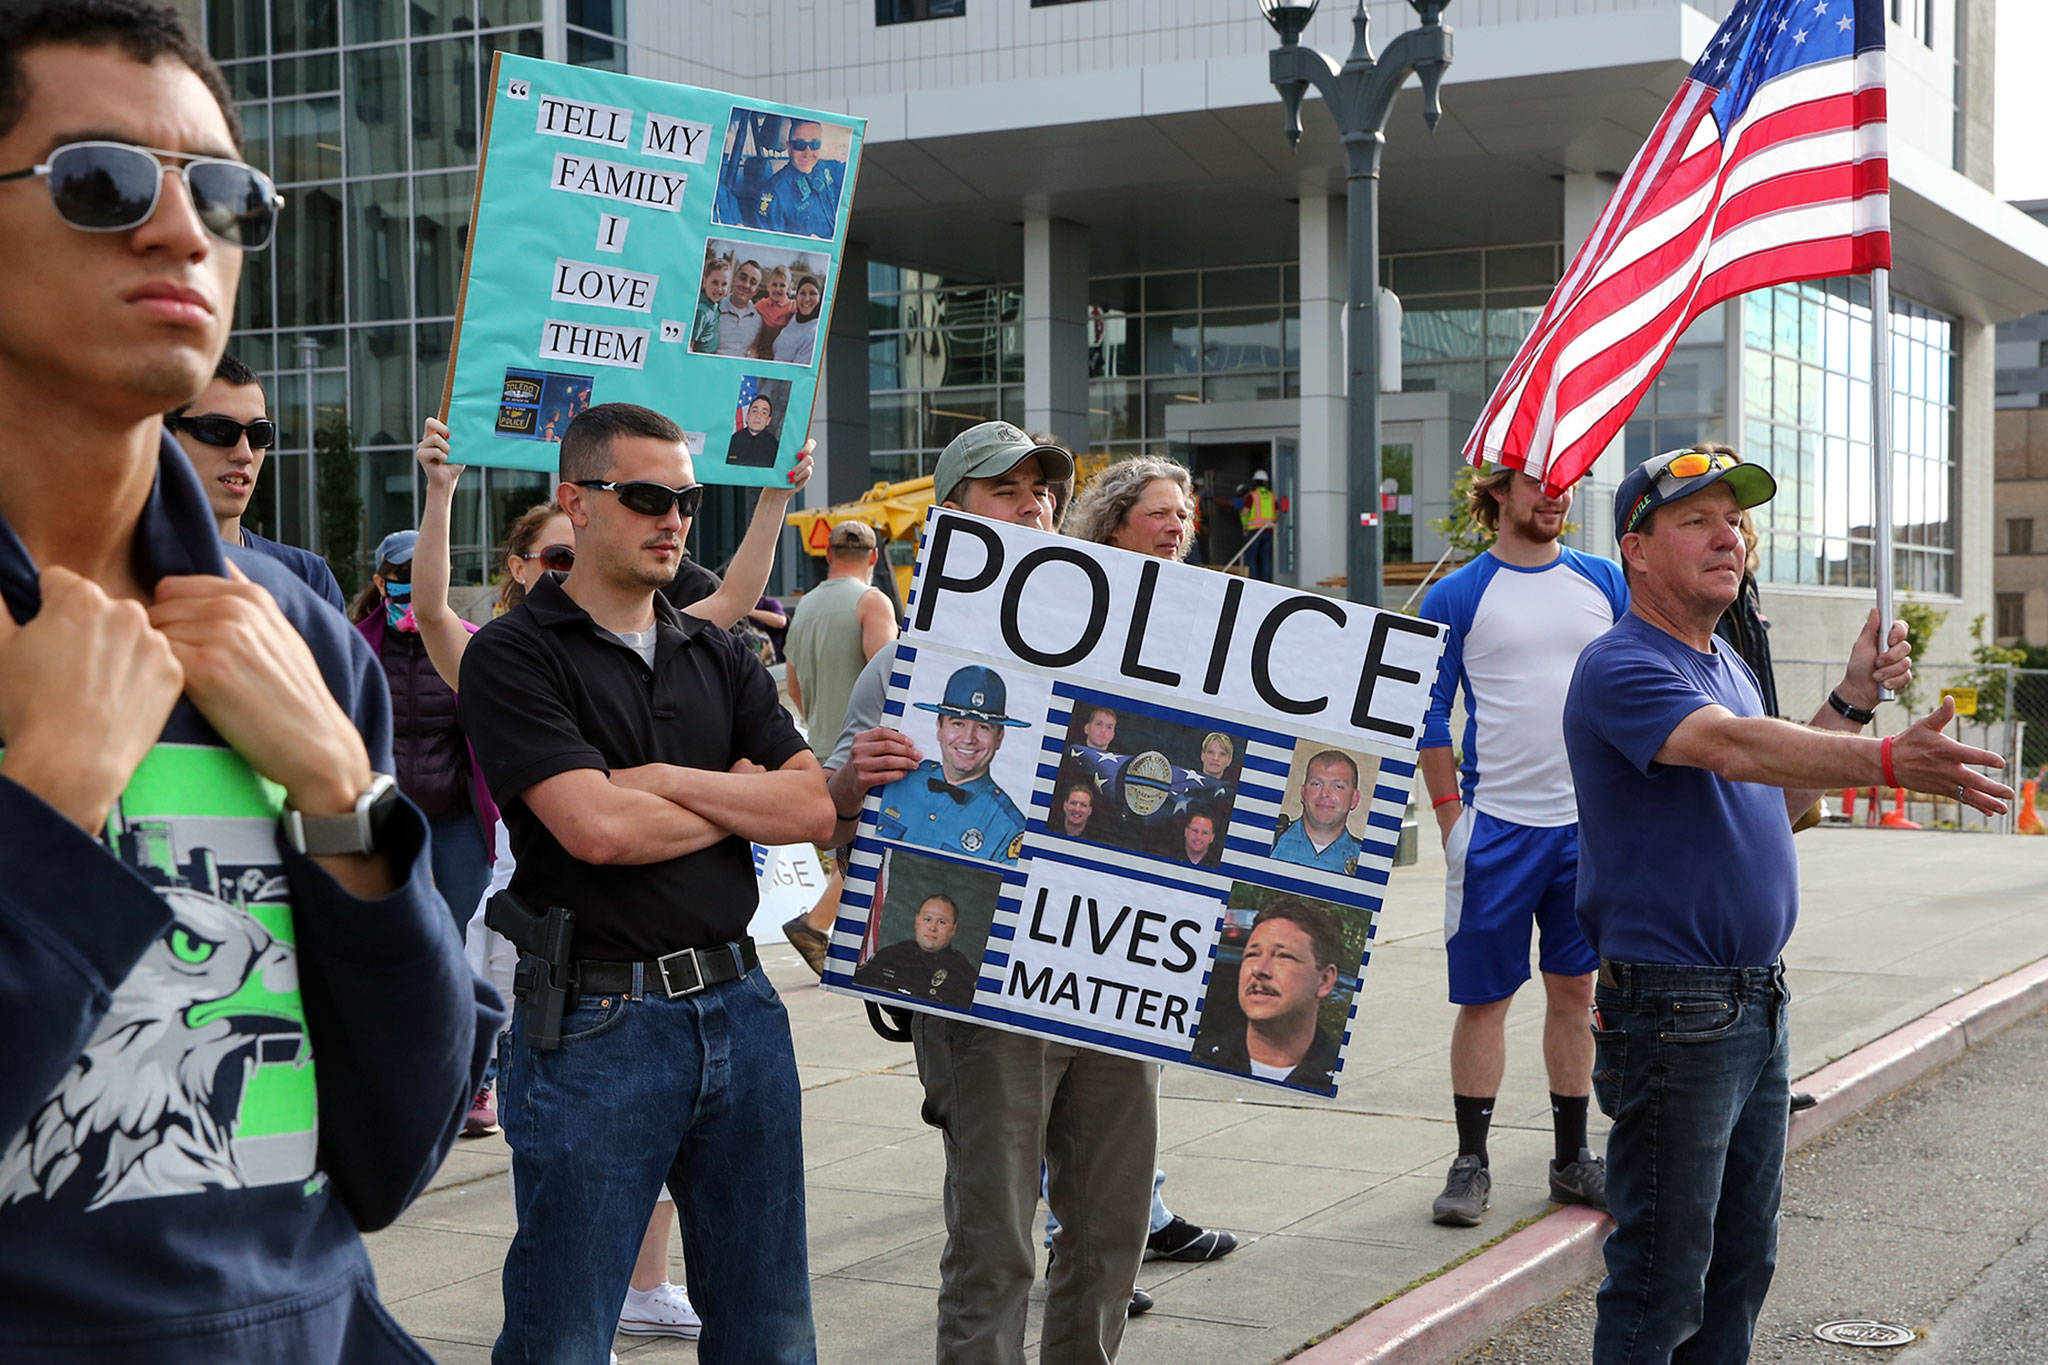 Supporters of law enforcement and first responders rally confront counter protesters Friday at the Snohomish County Plaza in Everett on July 17, 2020. (Kevin Clark / The Herald)